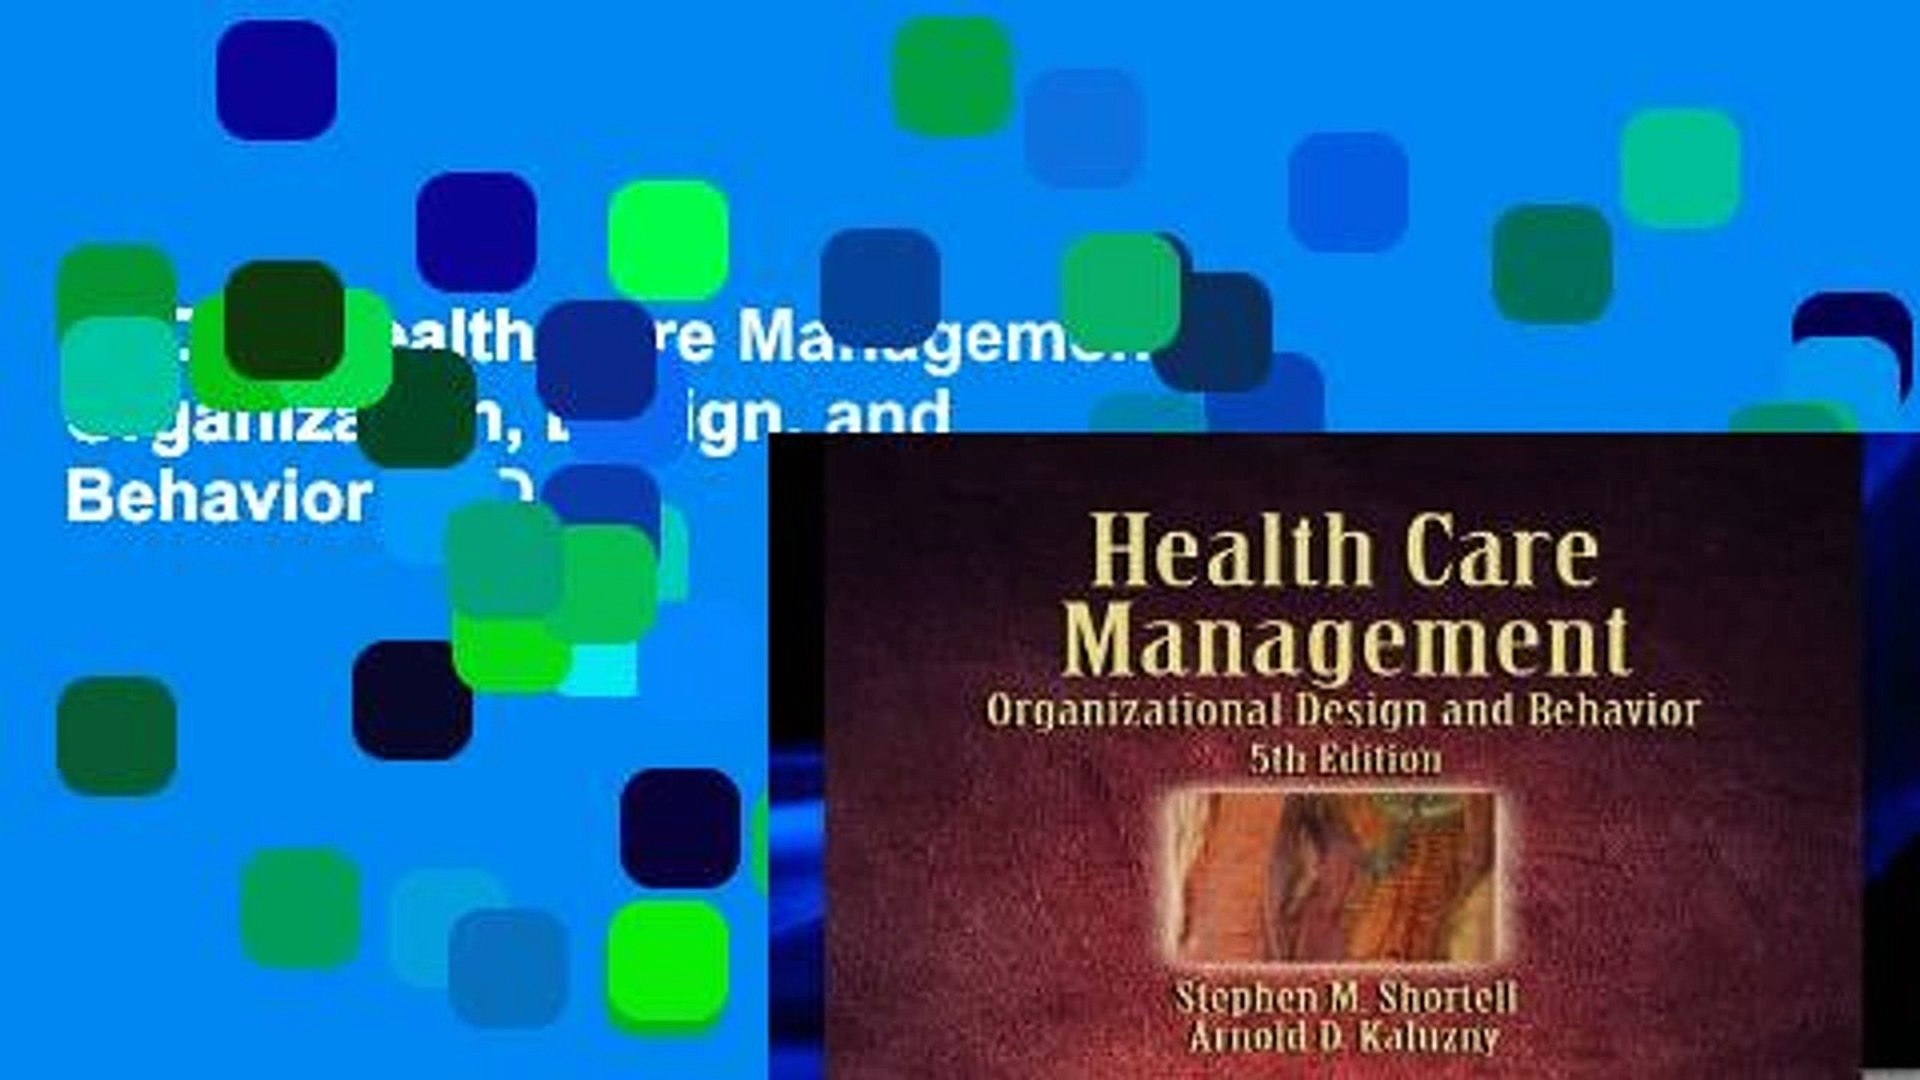 P D F Health Care Management Organization Design And Behavior P D F Video Dailymotion